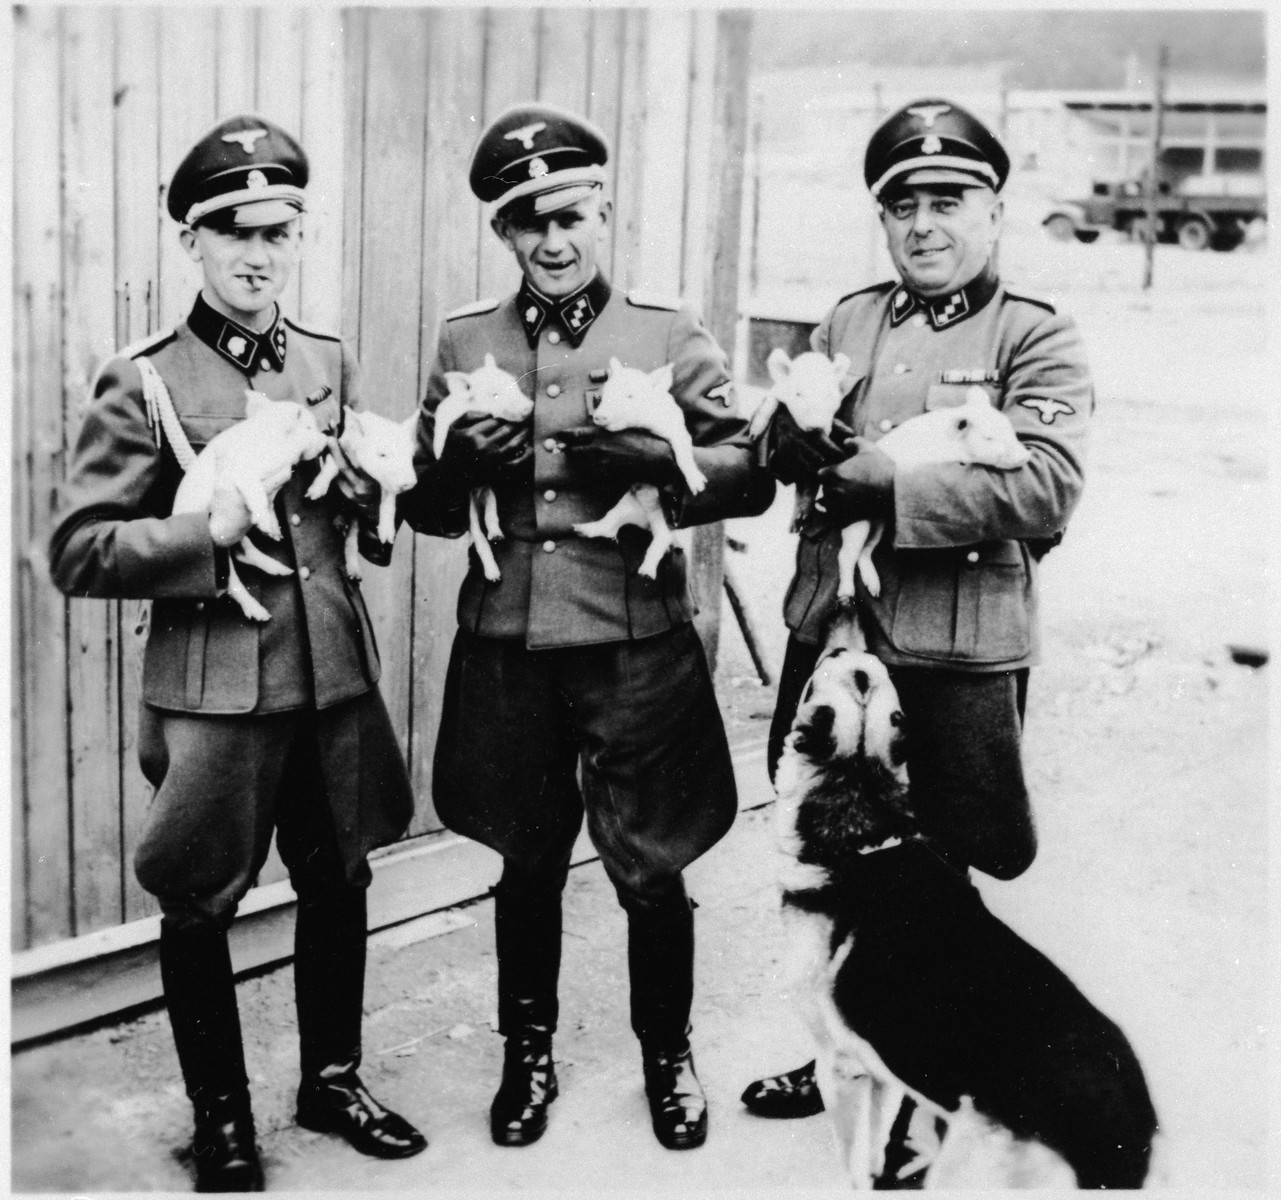 Three members of the SS staff in Gross-Rosen pose holding six piglets.  The adjutant to the commandant, Kuno Schramm, is standing on the left.  In the center is Anton Thumann.